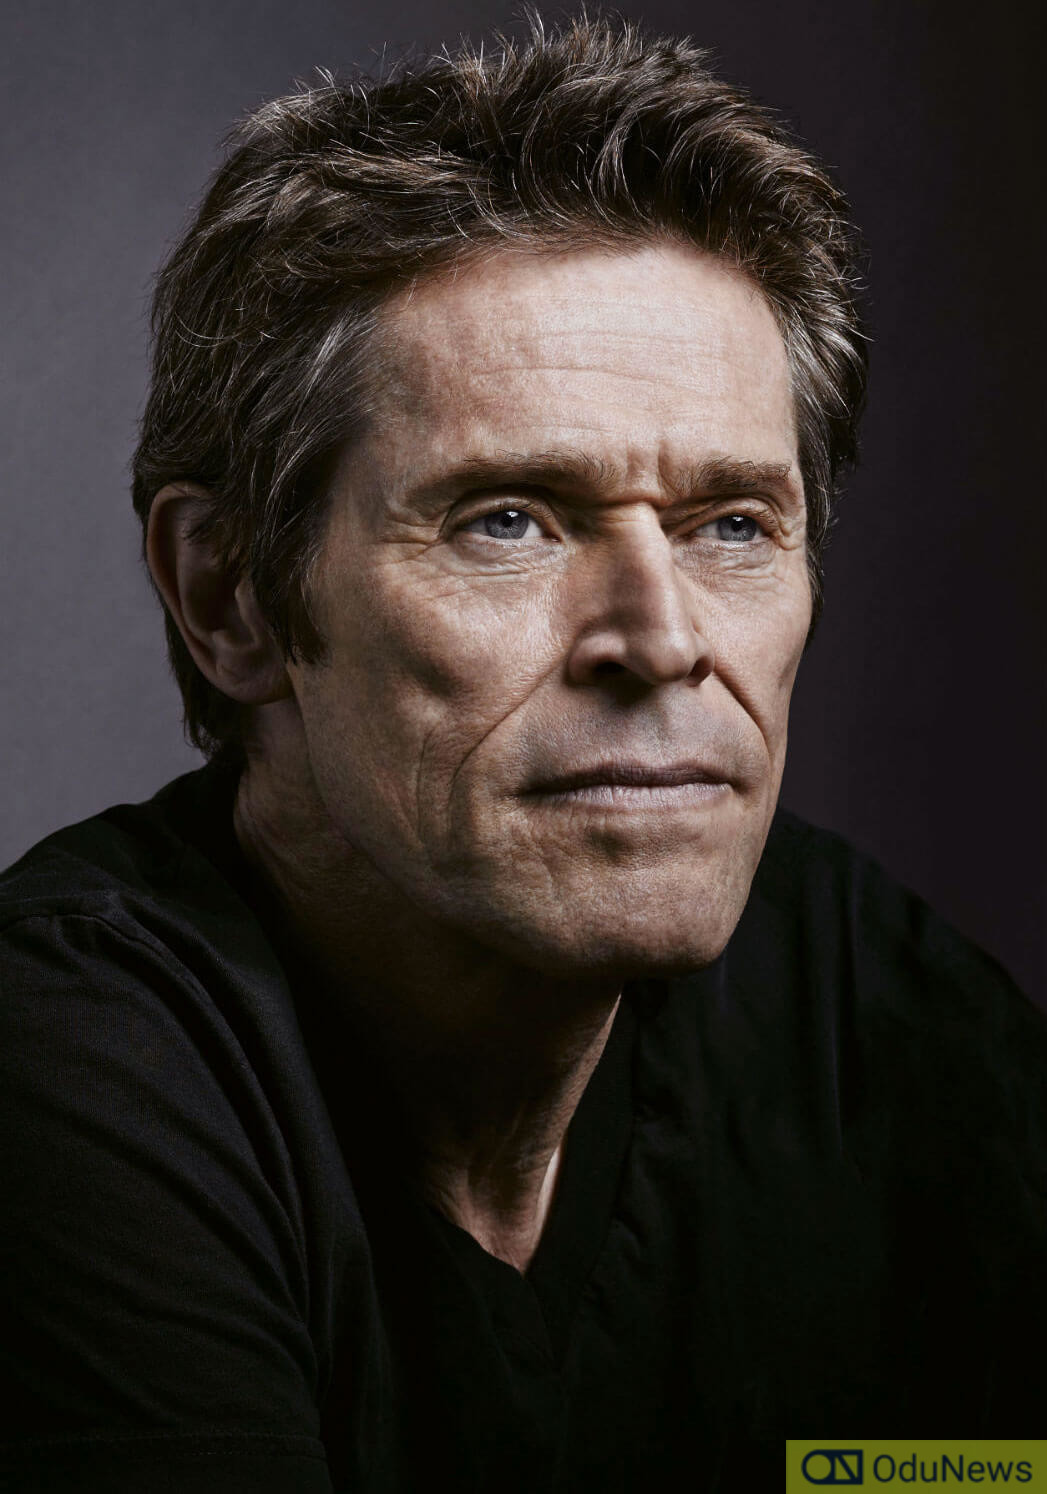 Willem Dafoe's character makes some irrational choices